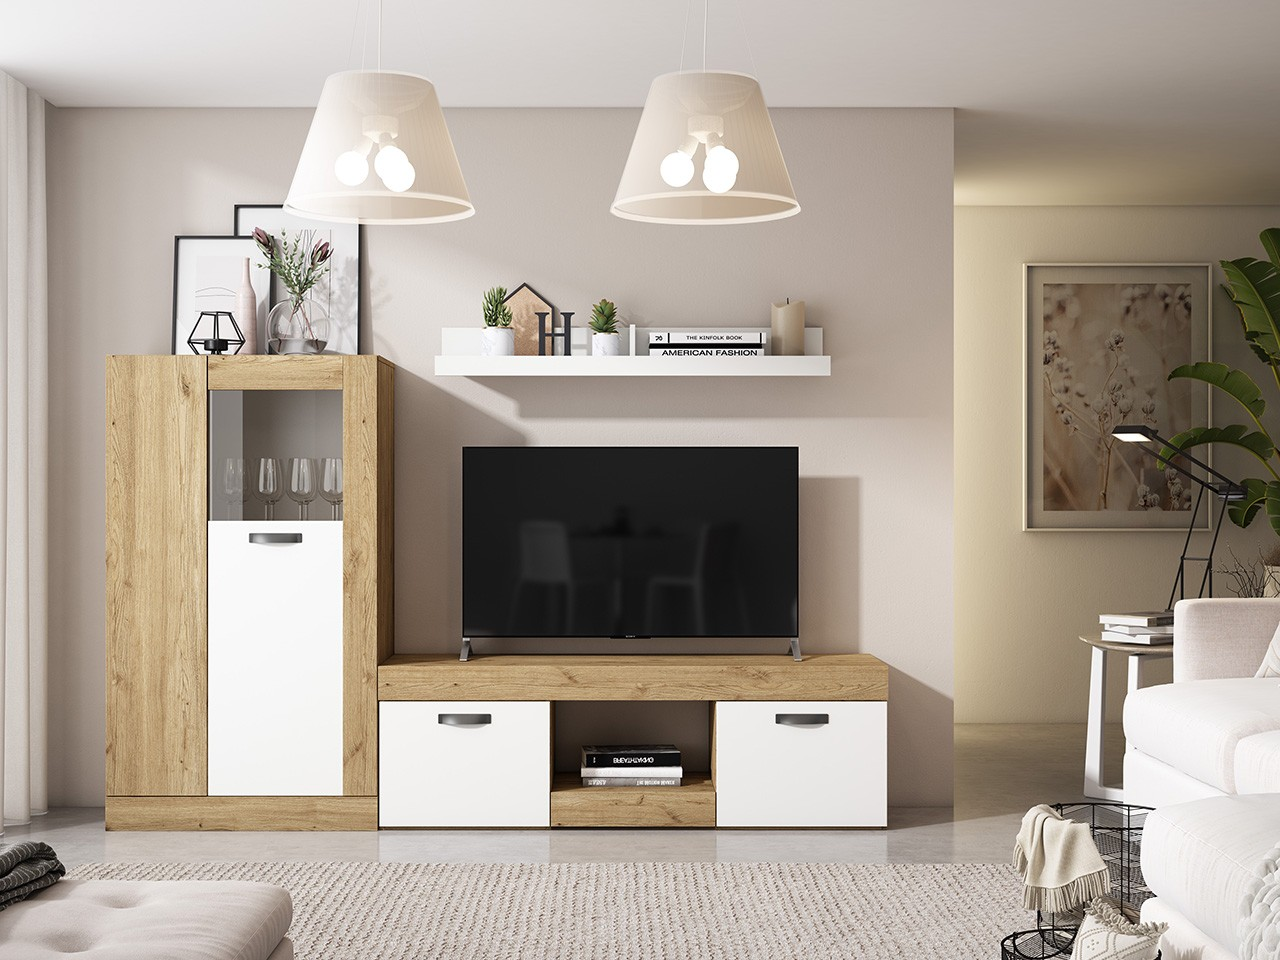 Muebles modernos para tv y escritorio for Mueble tv barato